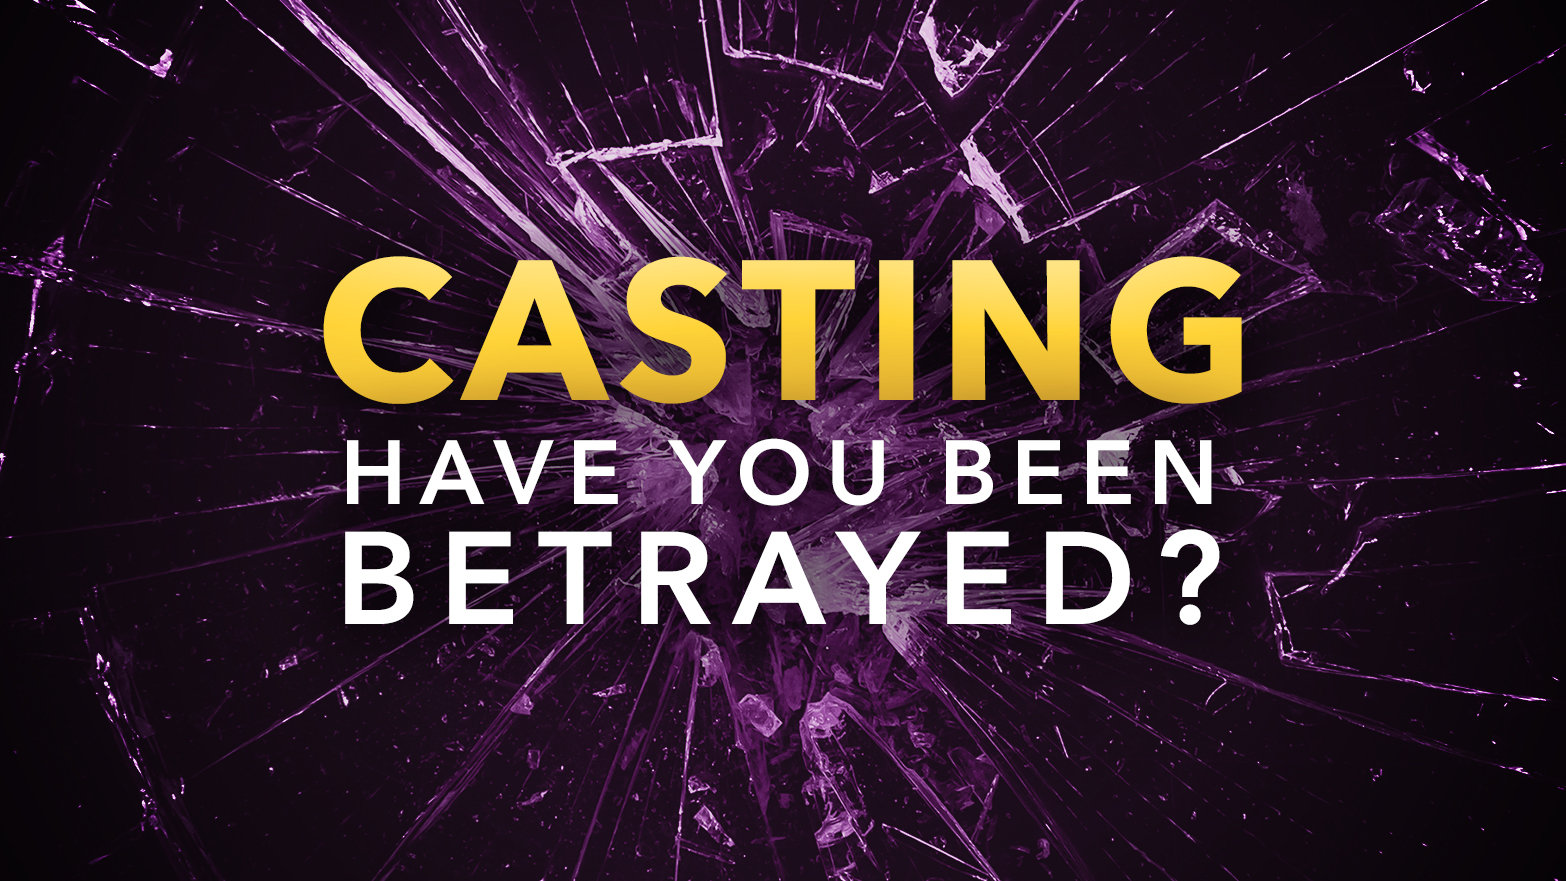 Casting: Have You Been Betrayed?